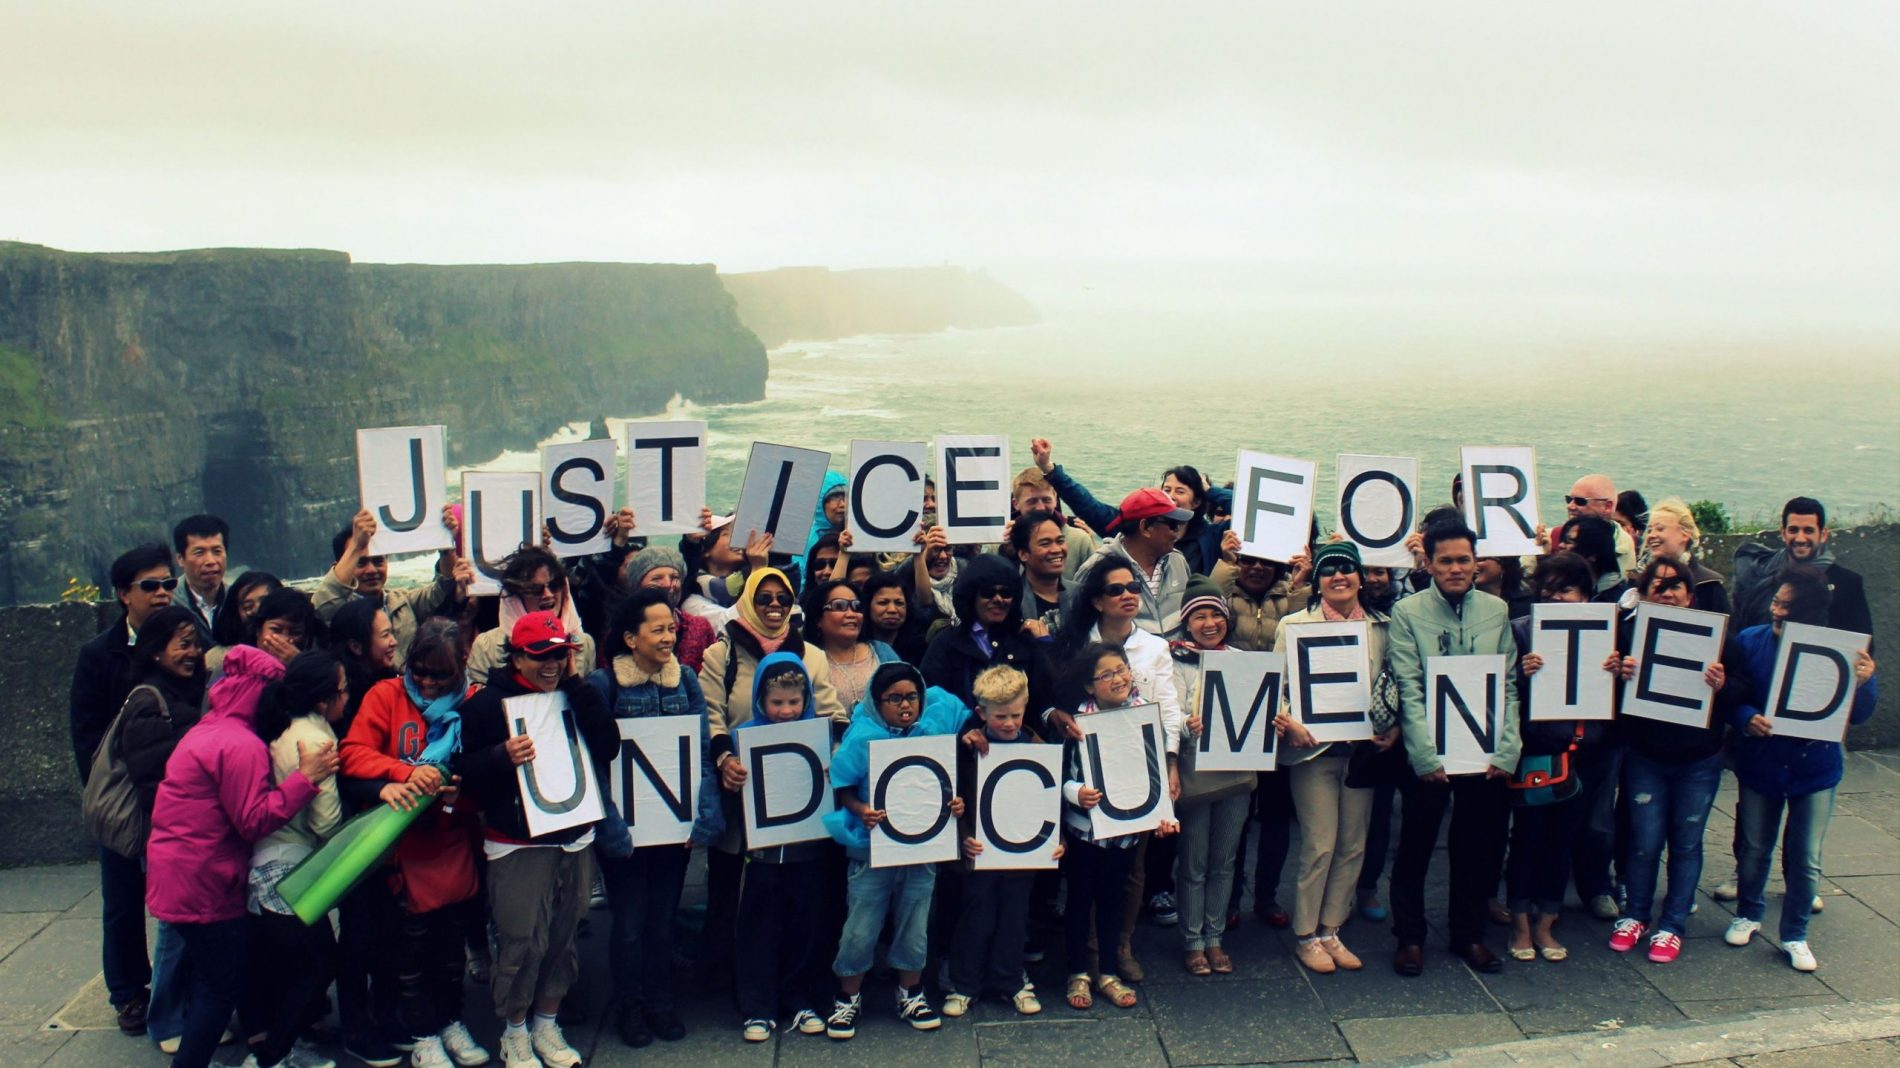 Justice for Undocumented group picture